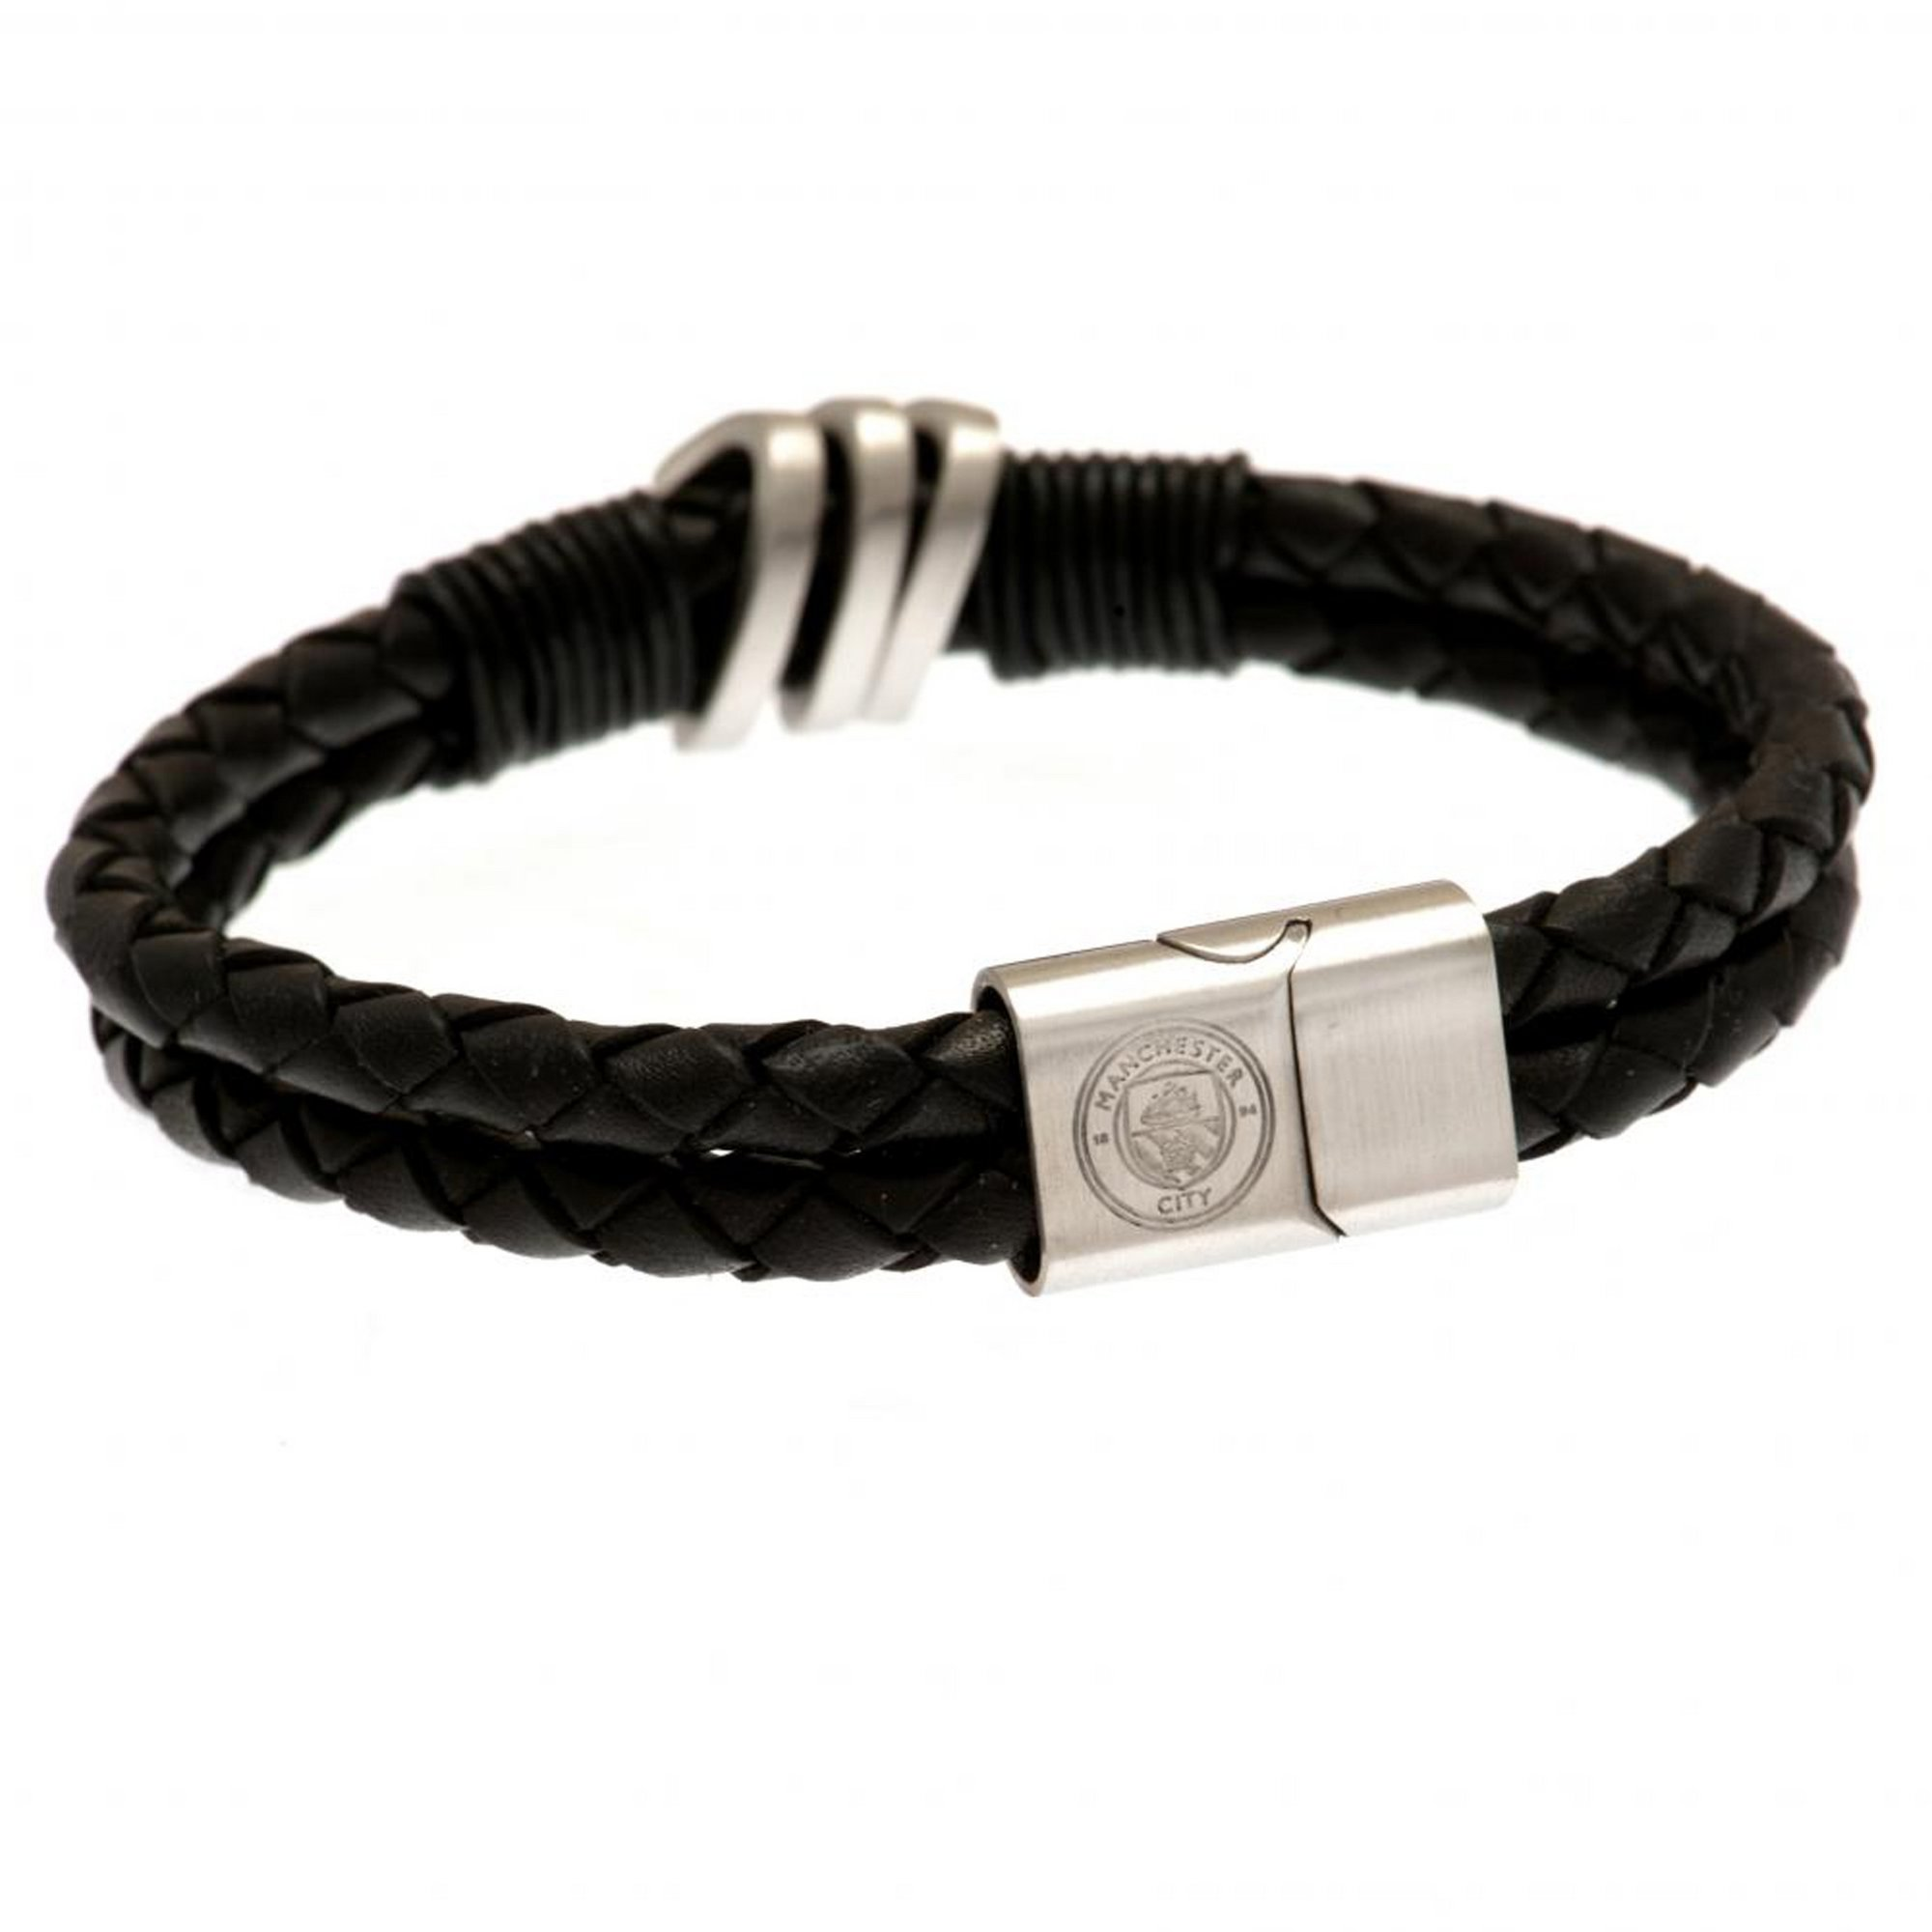 Image of Manchester City FC Stainless Steel and Leather Crest Bracelet